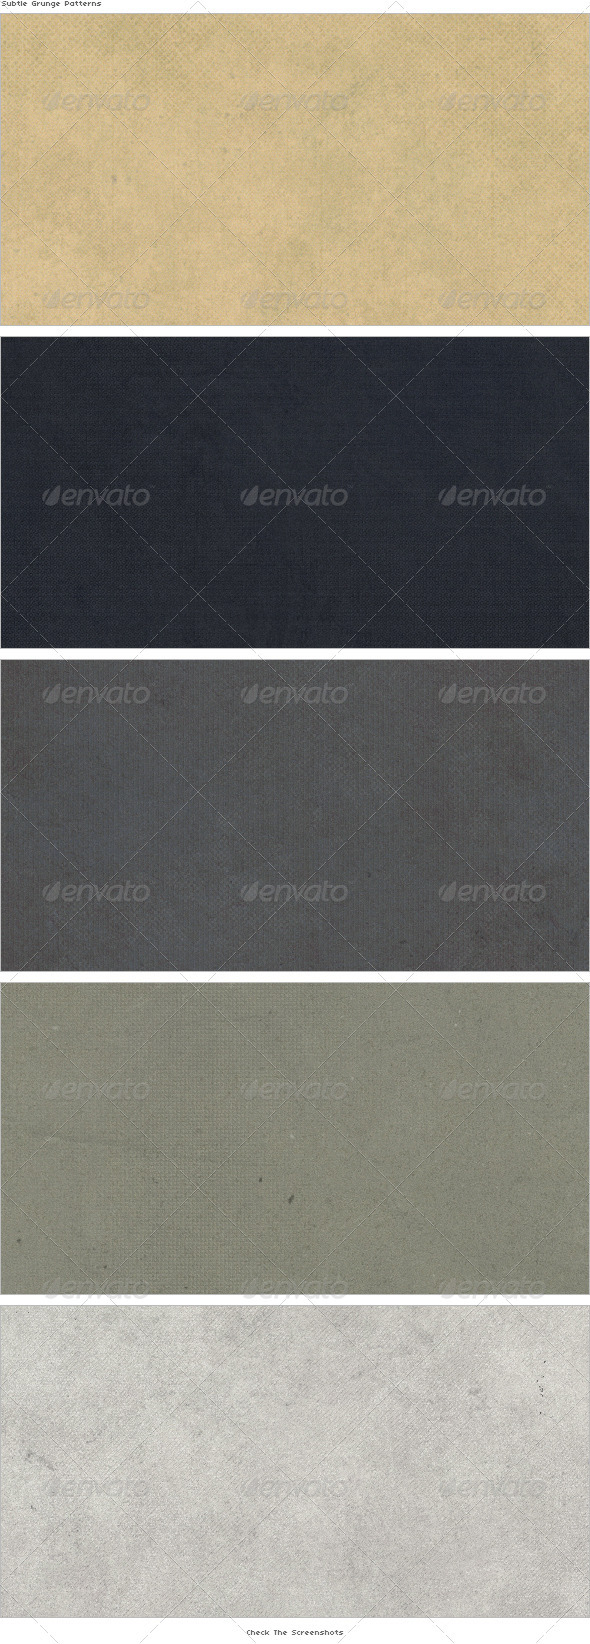 Subtle Grunge Patterns - Textures / Fills / Patterns Photoshop